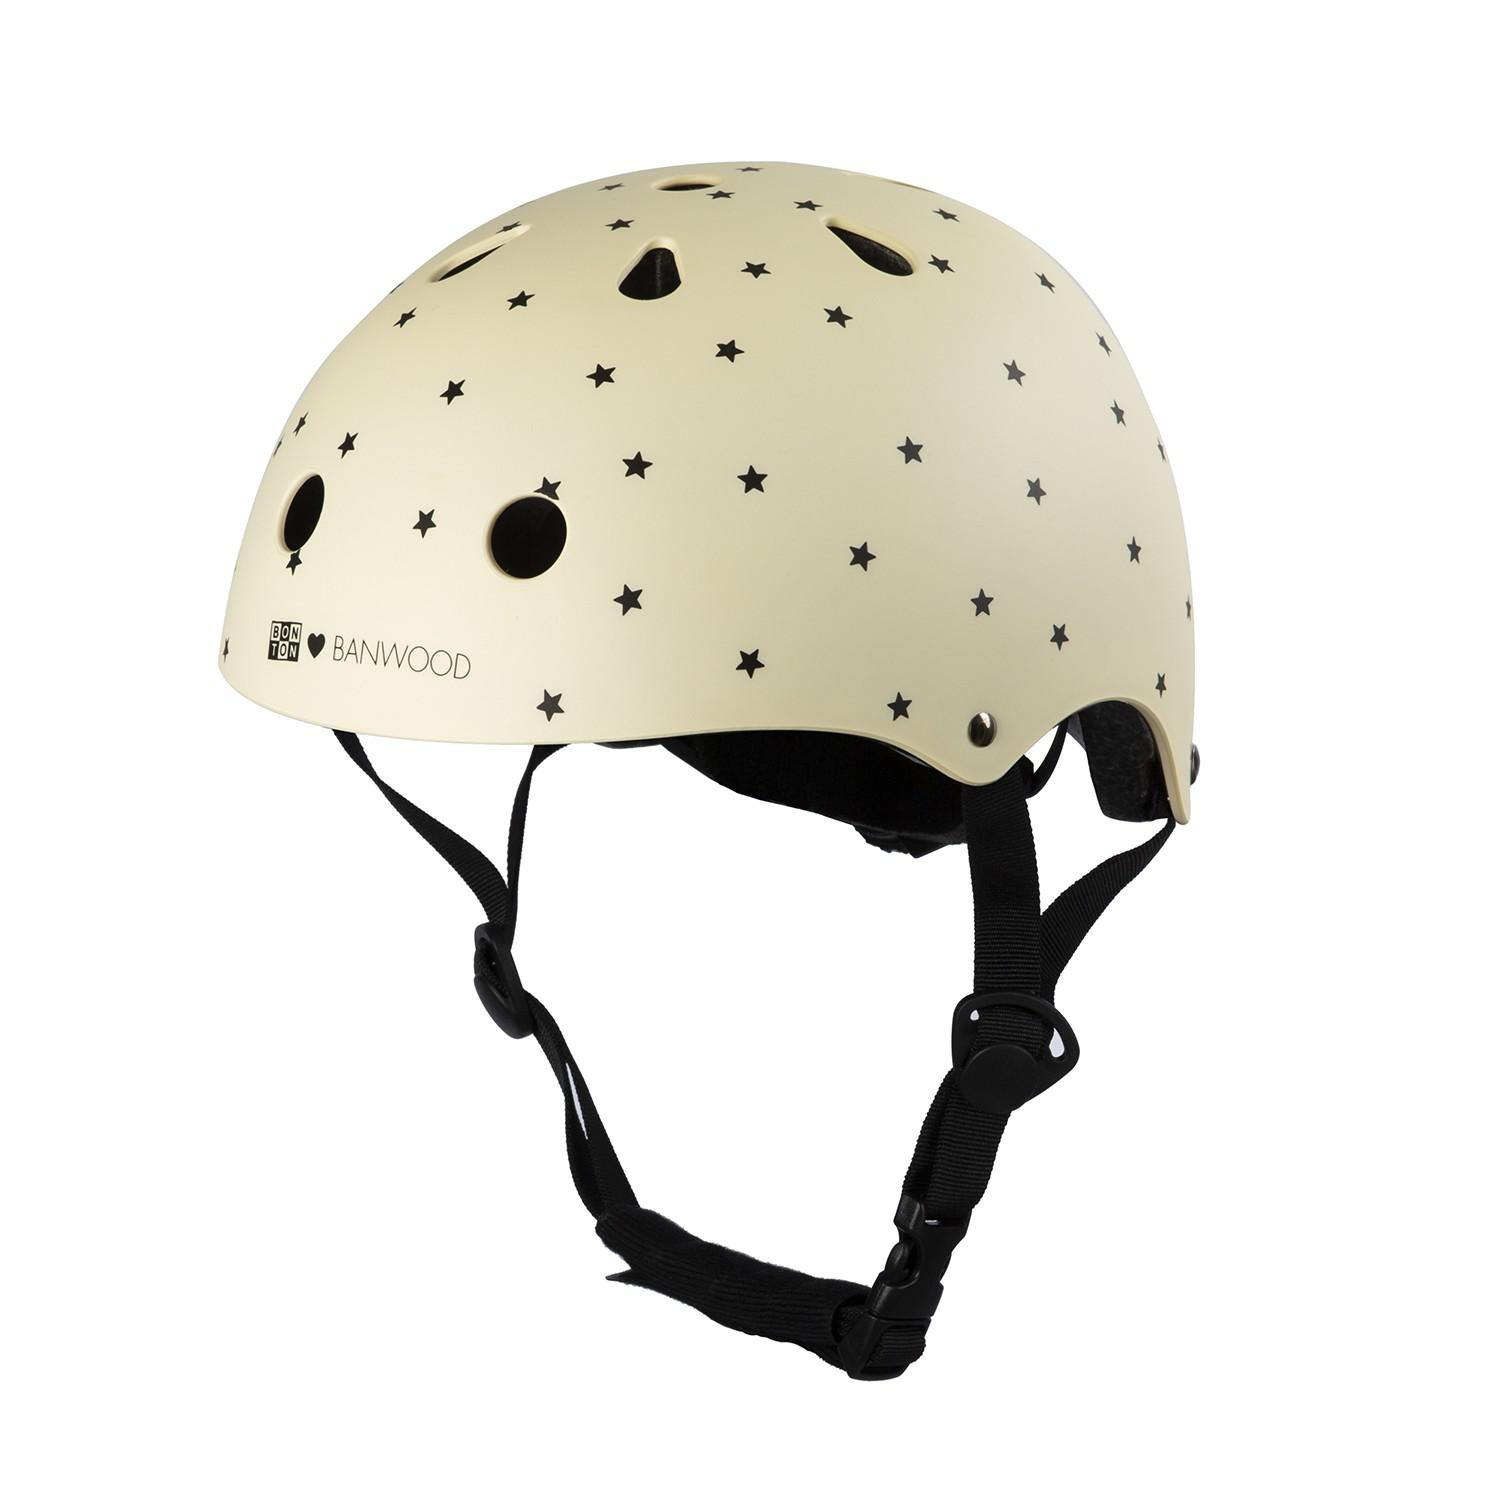 Casco Clásico Bonton R Color Crema Banwood